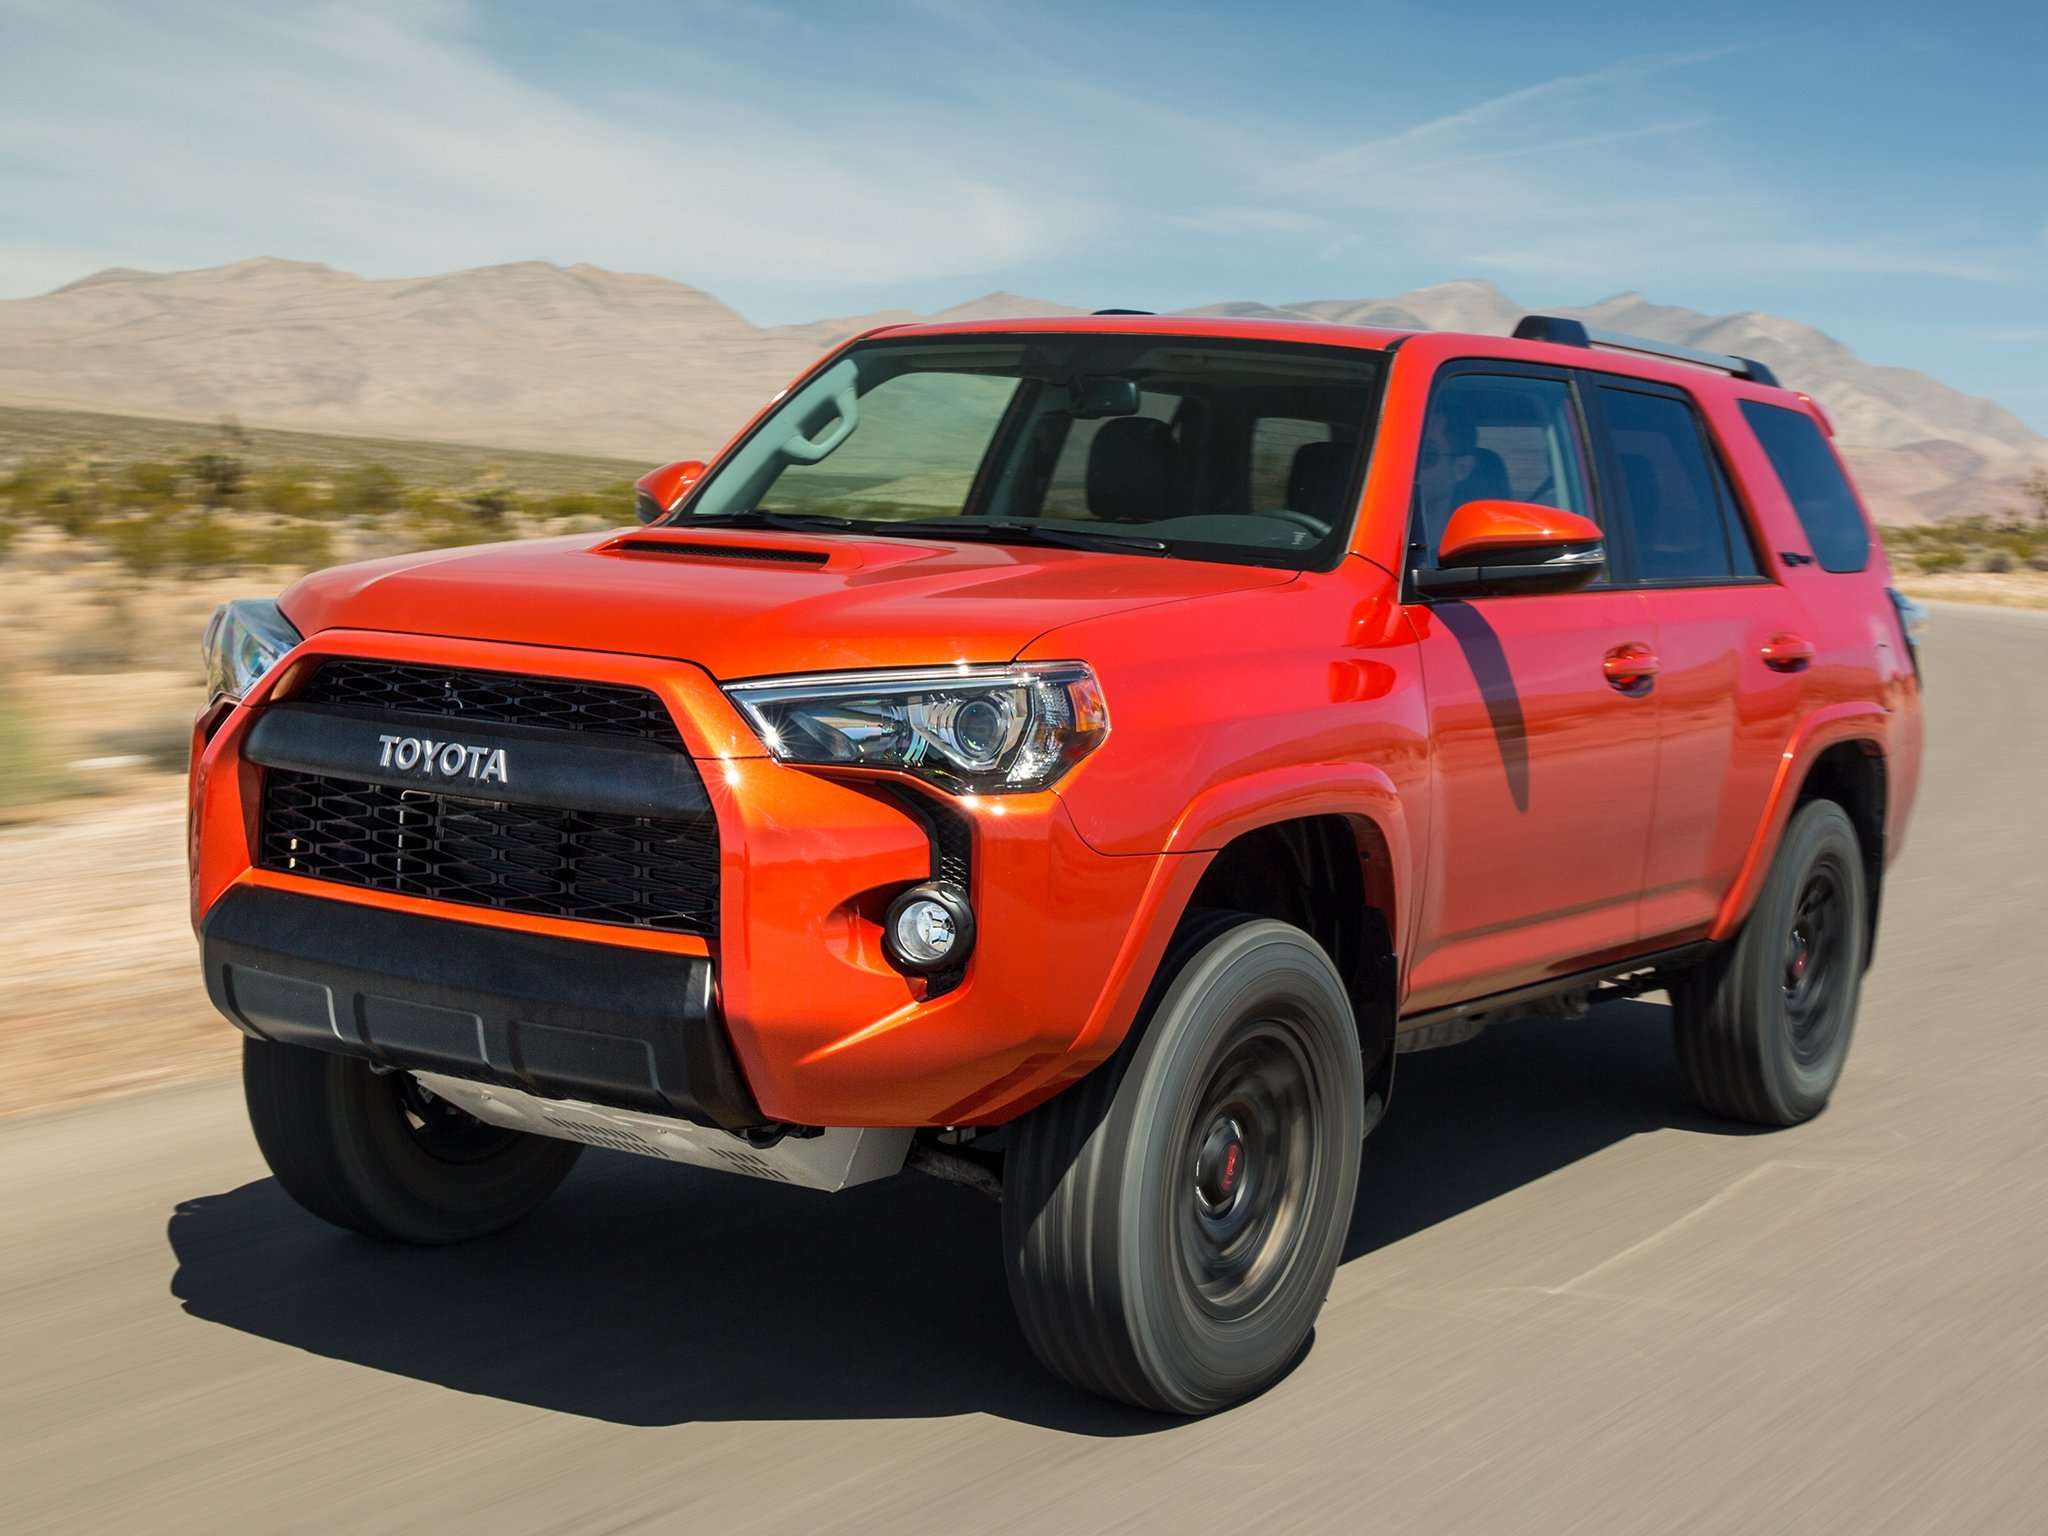 2015 trd toyota 4runner pro 4x4 suv w wallpaper 2048x1536 351042 wallpaperup. Black Bedroom Furniture Sets. Home Design Ideas